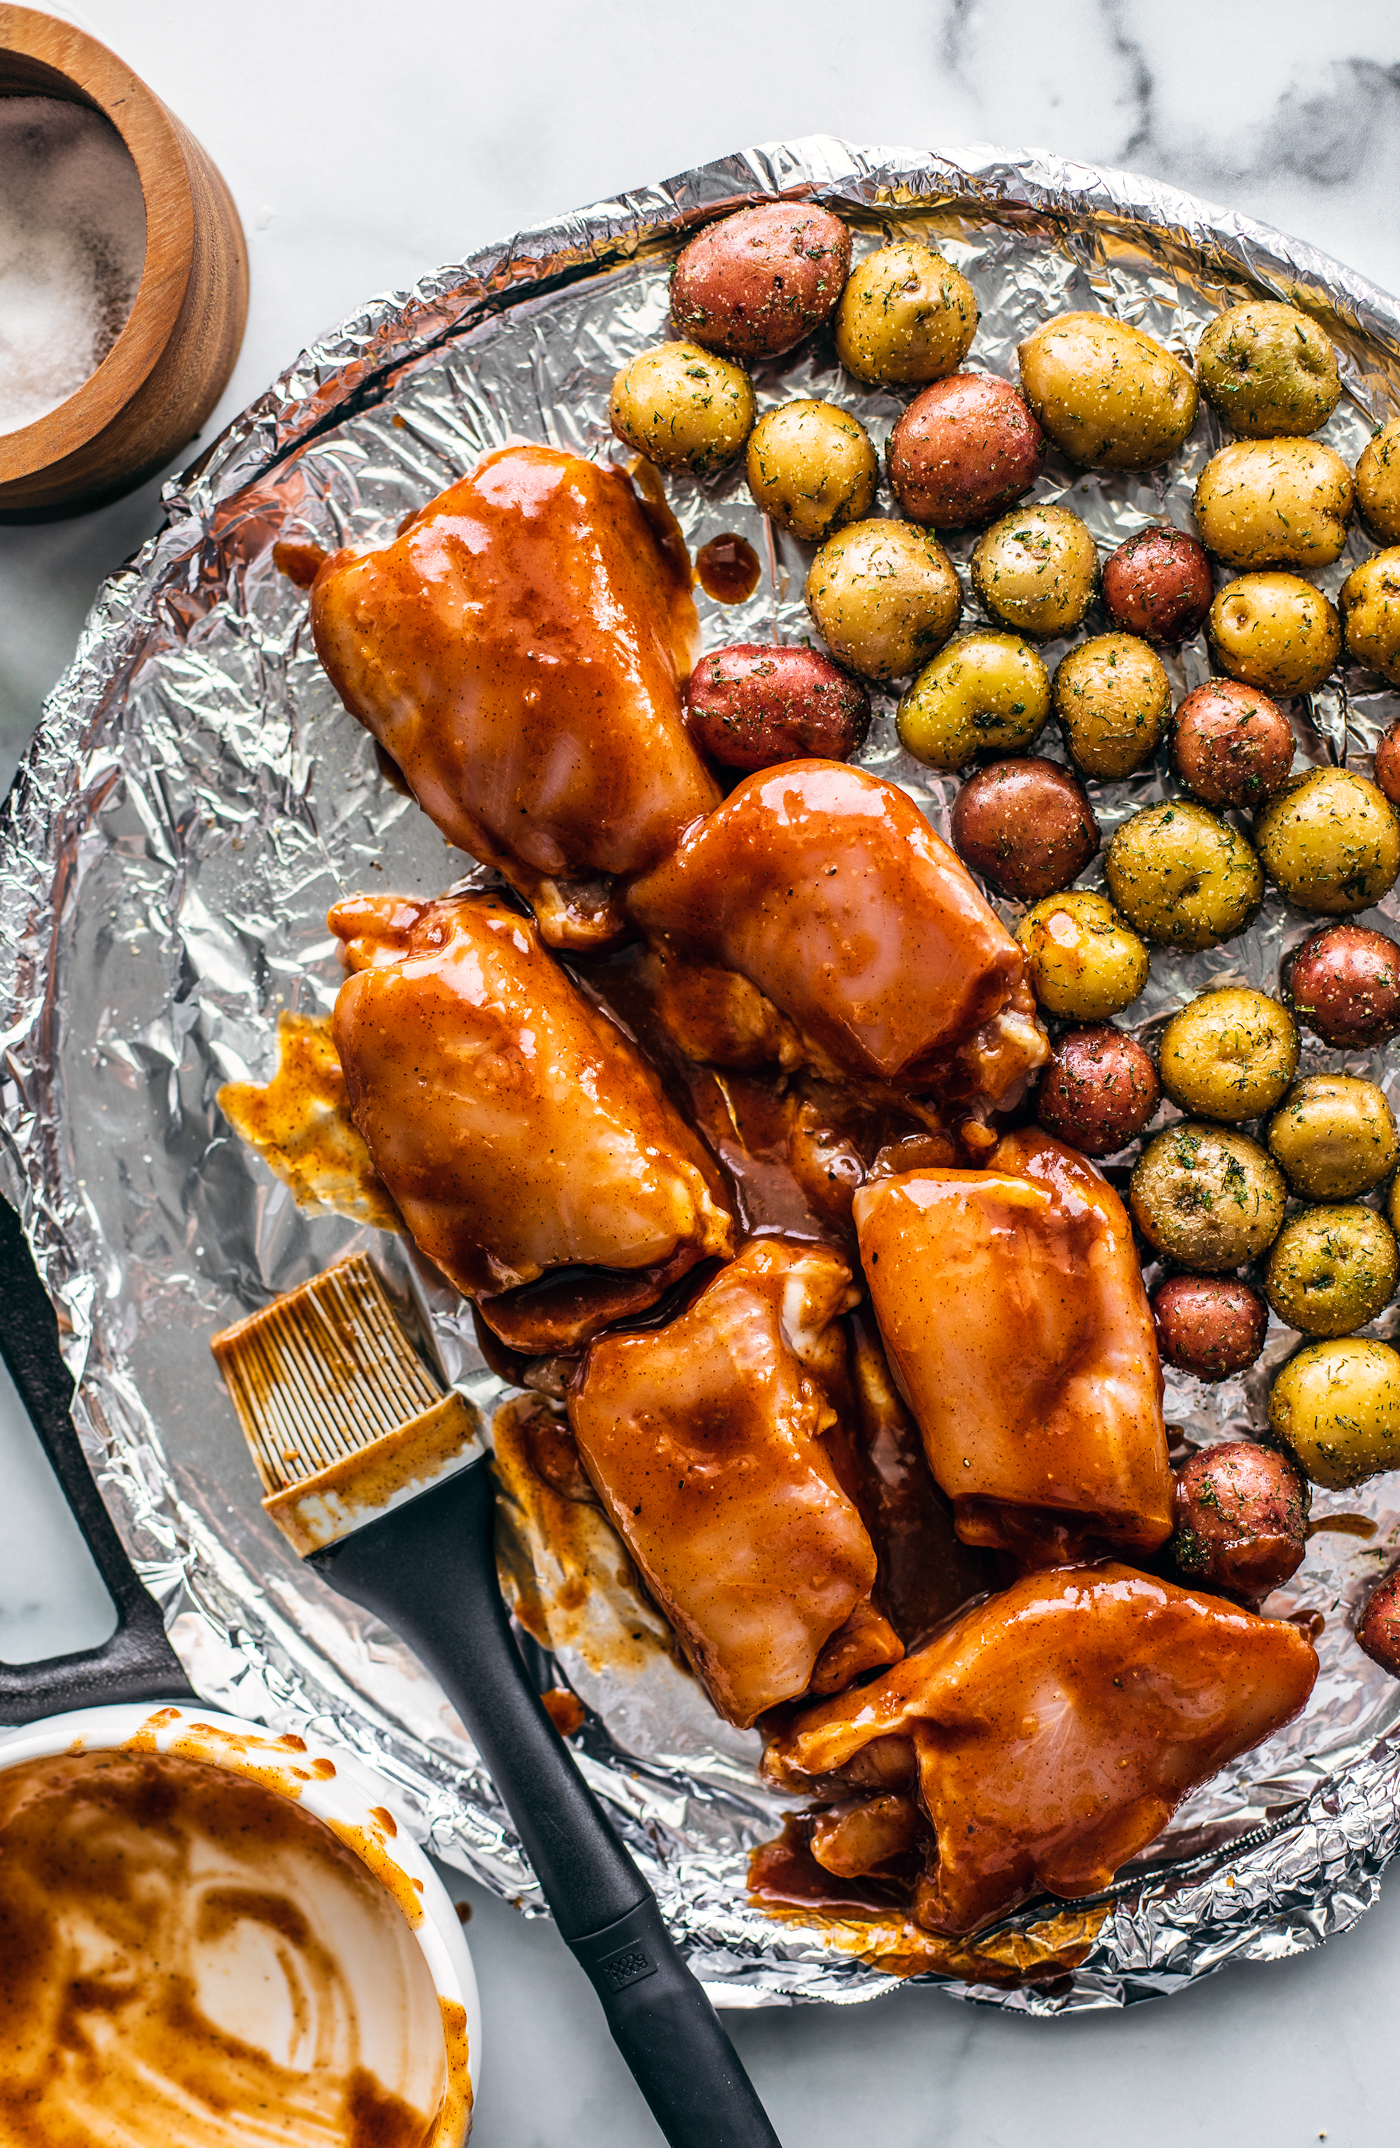 Uncooked chicken and potatoes on sheet pan with BBQ sauce.